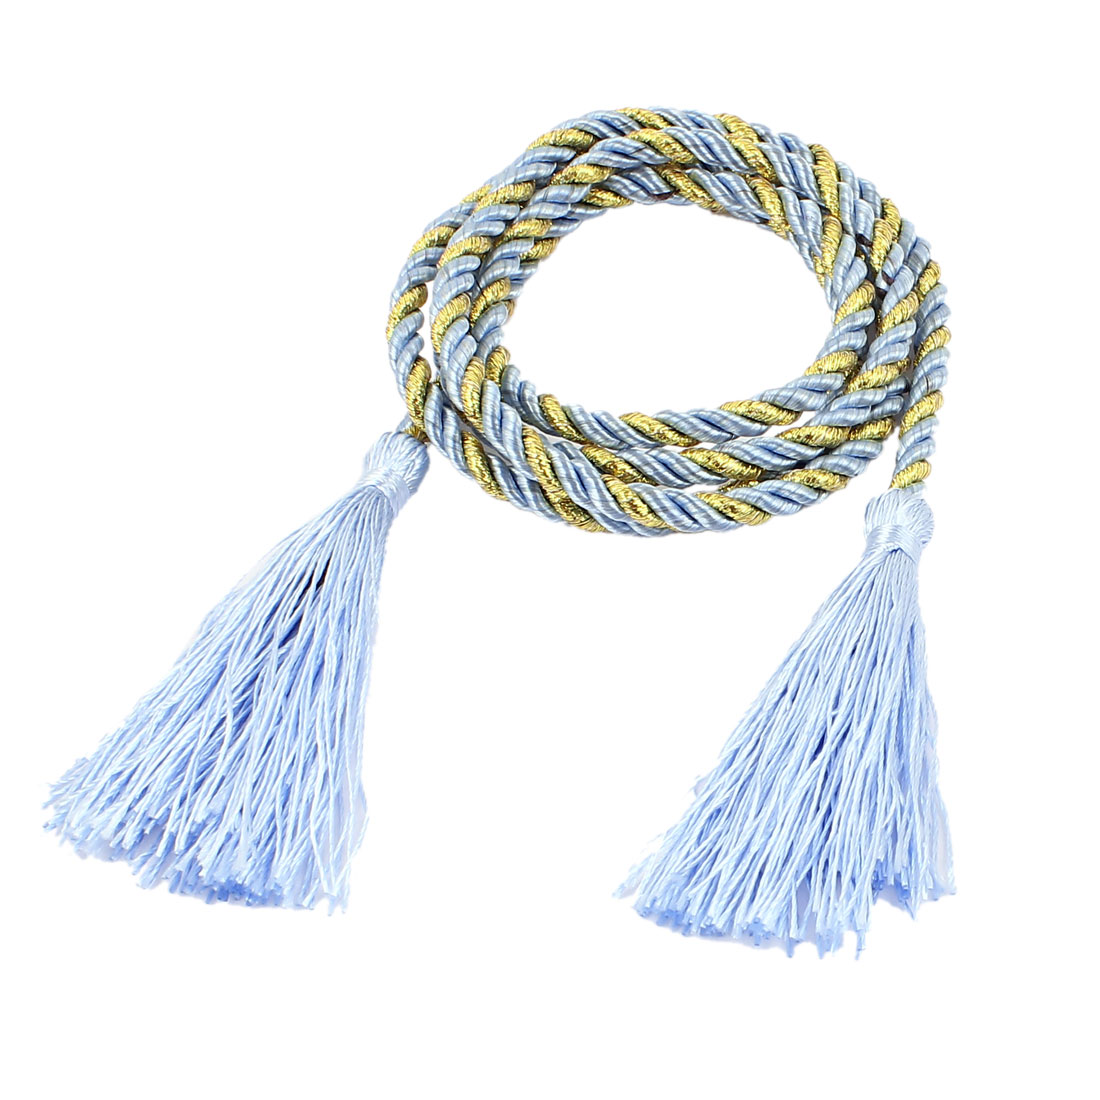 Window Curtain Tieback Tie Back Tassels Trim Rope Cord String 133cm Blue